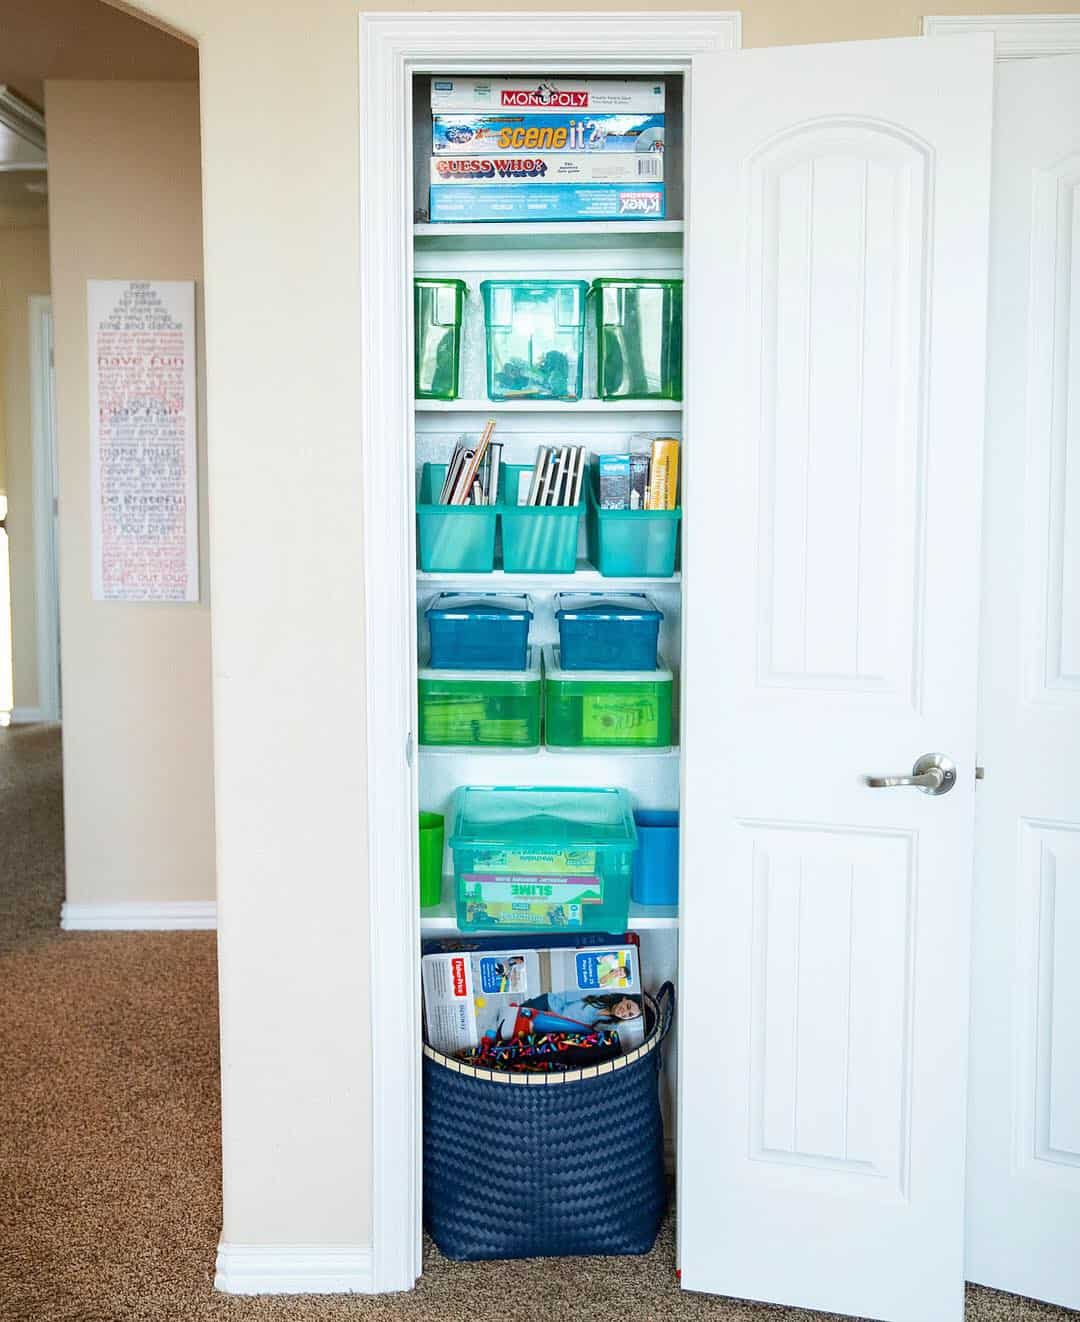 Toy Closet Organization Tips Under $100 featured by top US lifestyle blog, Glamorous Versatility | Top Home Organization Projects of 2019 by popular Dallas life and style blog, Glamorous Versatility: image of an organized toy closet.